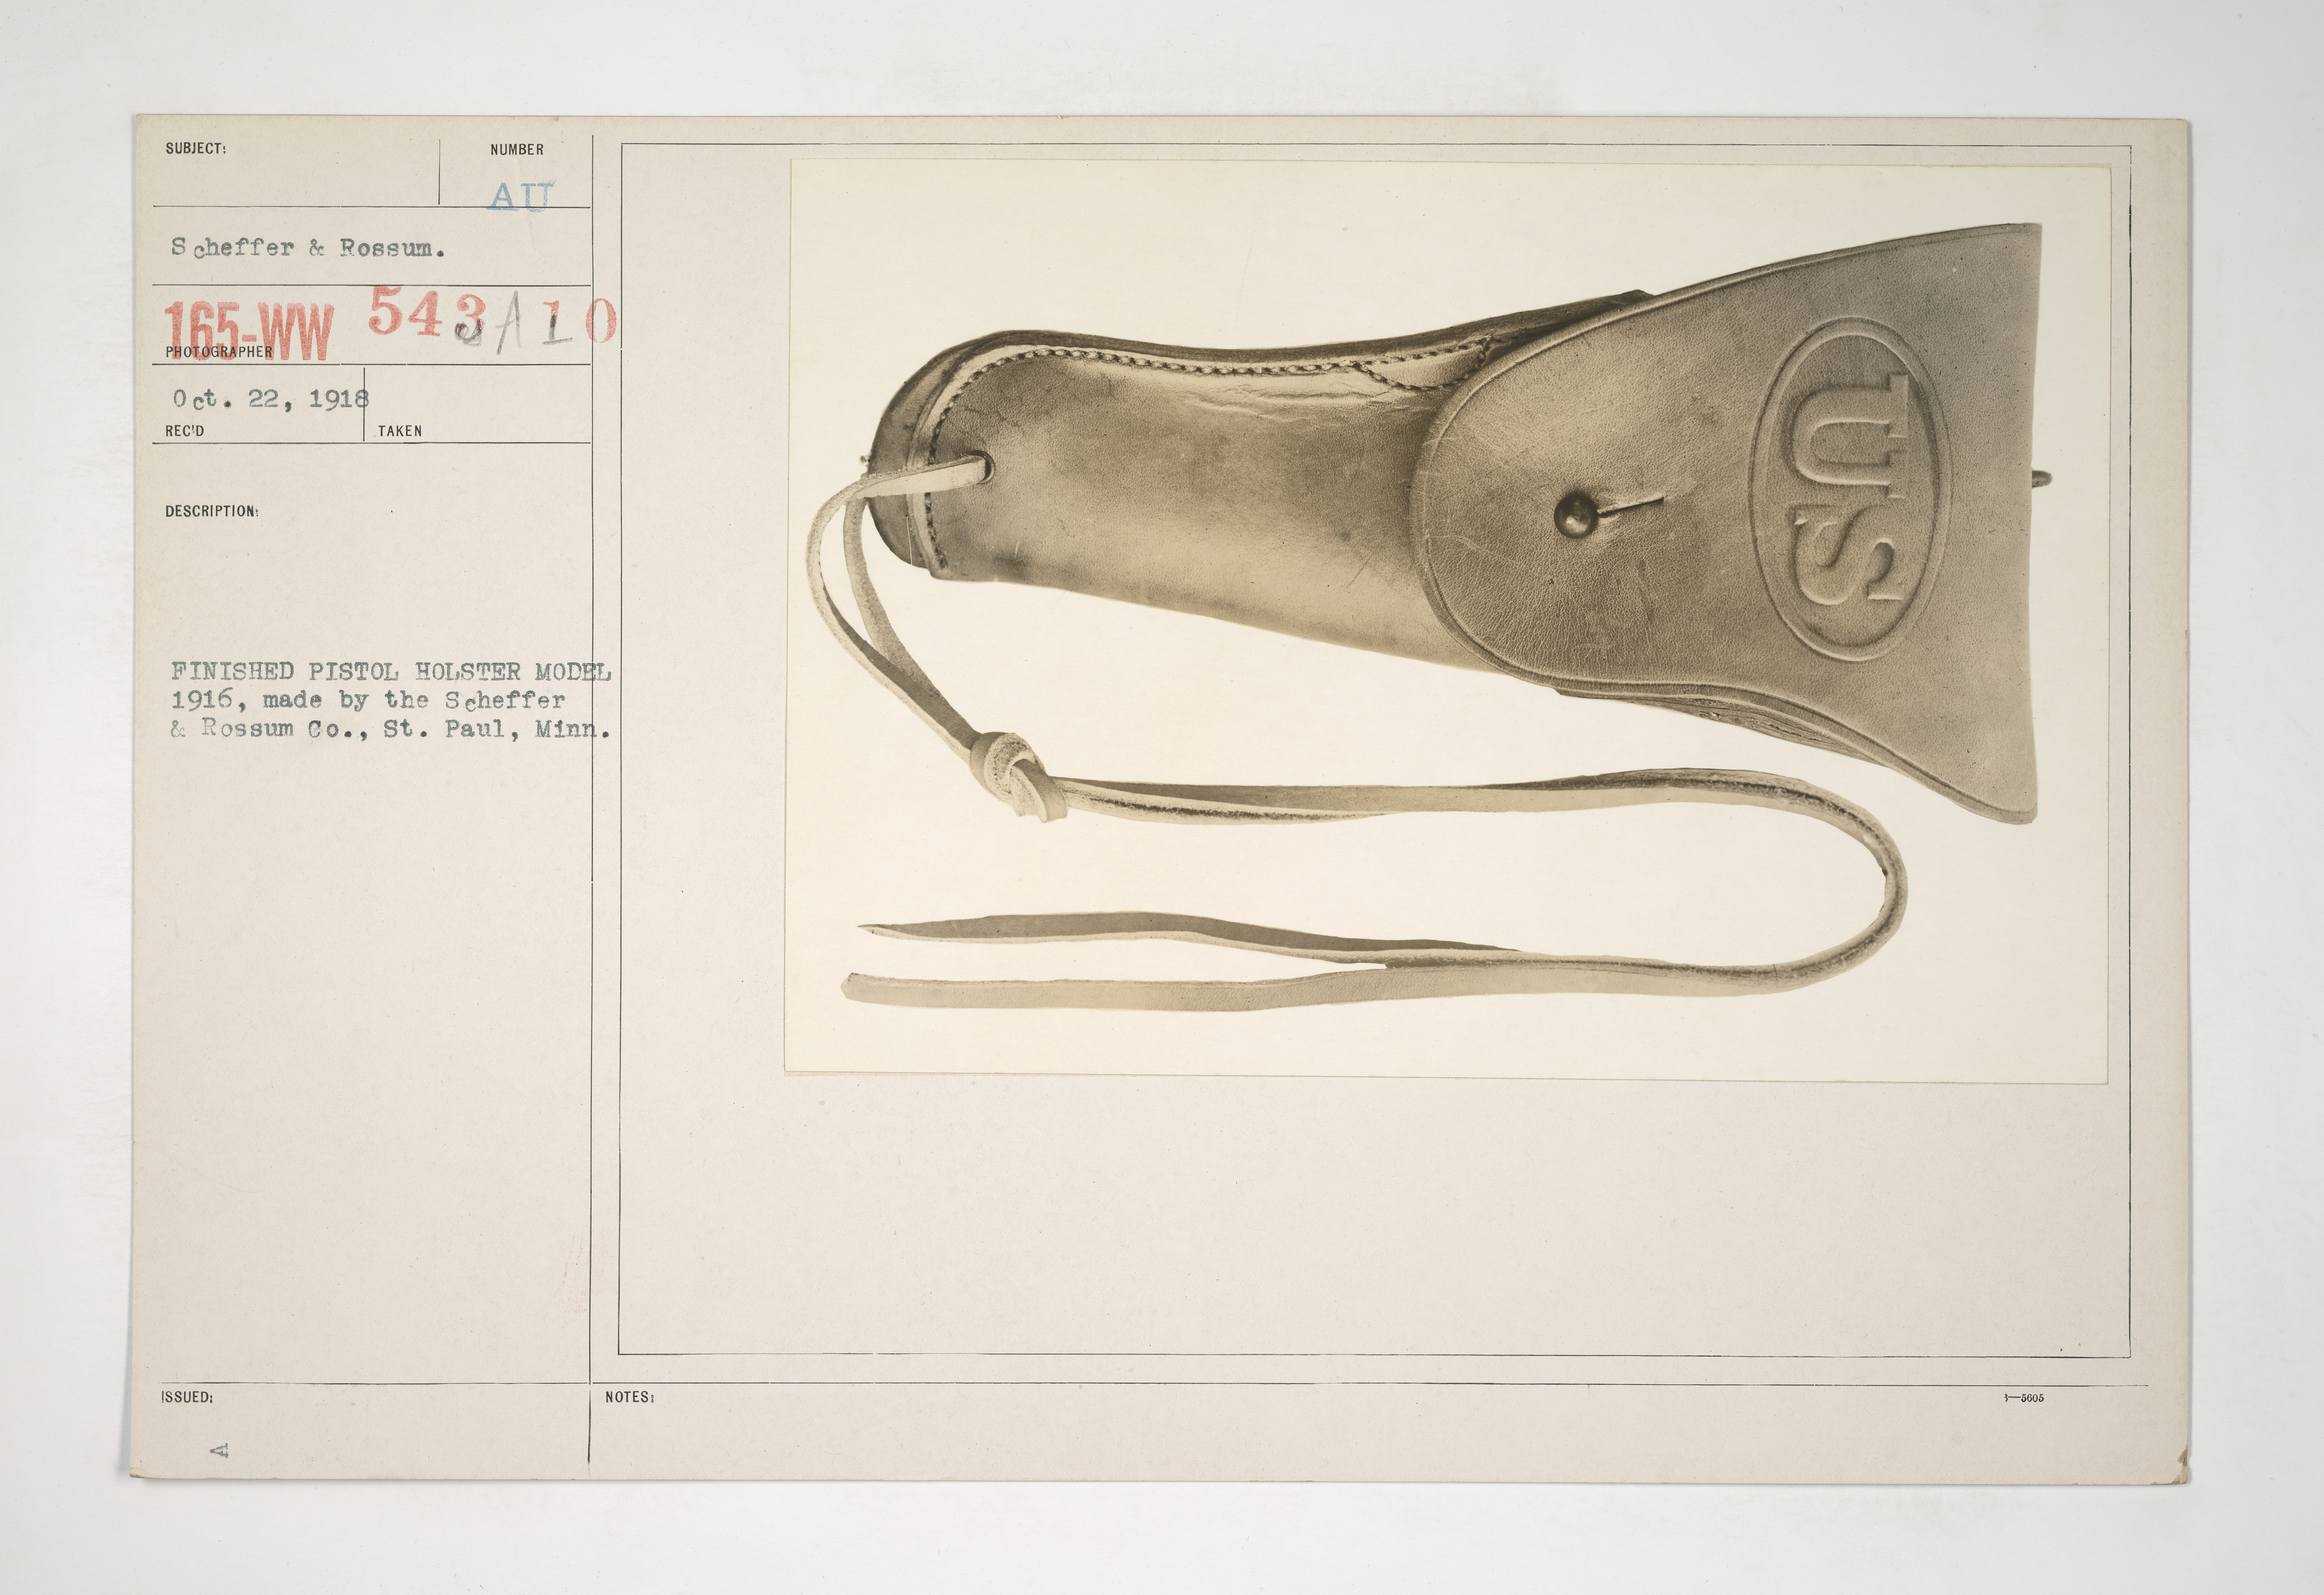 Uniforms and Equipment - Pouches and Scabbards [165-WW-543A-10]